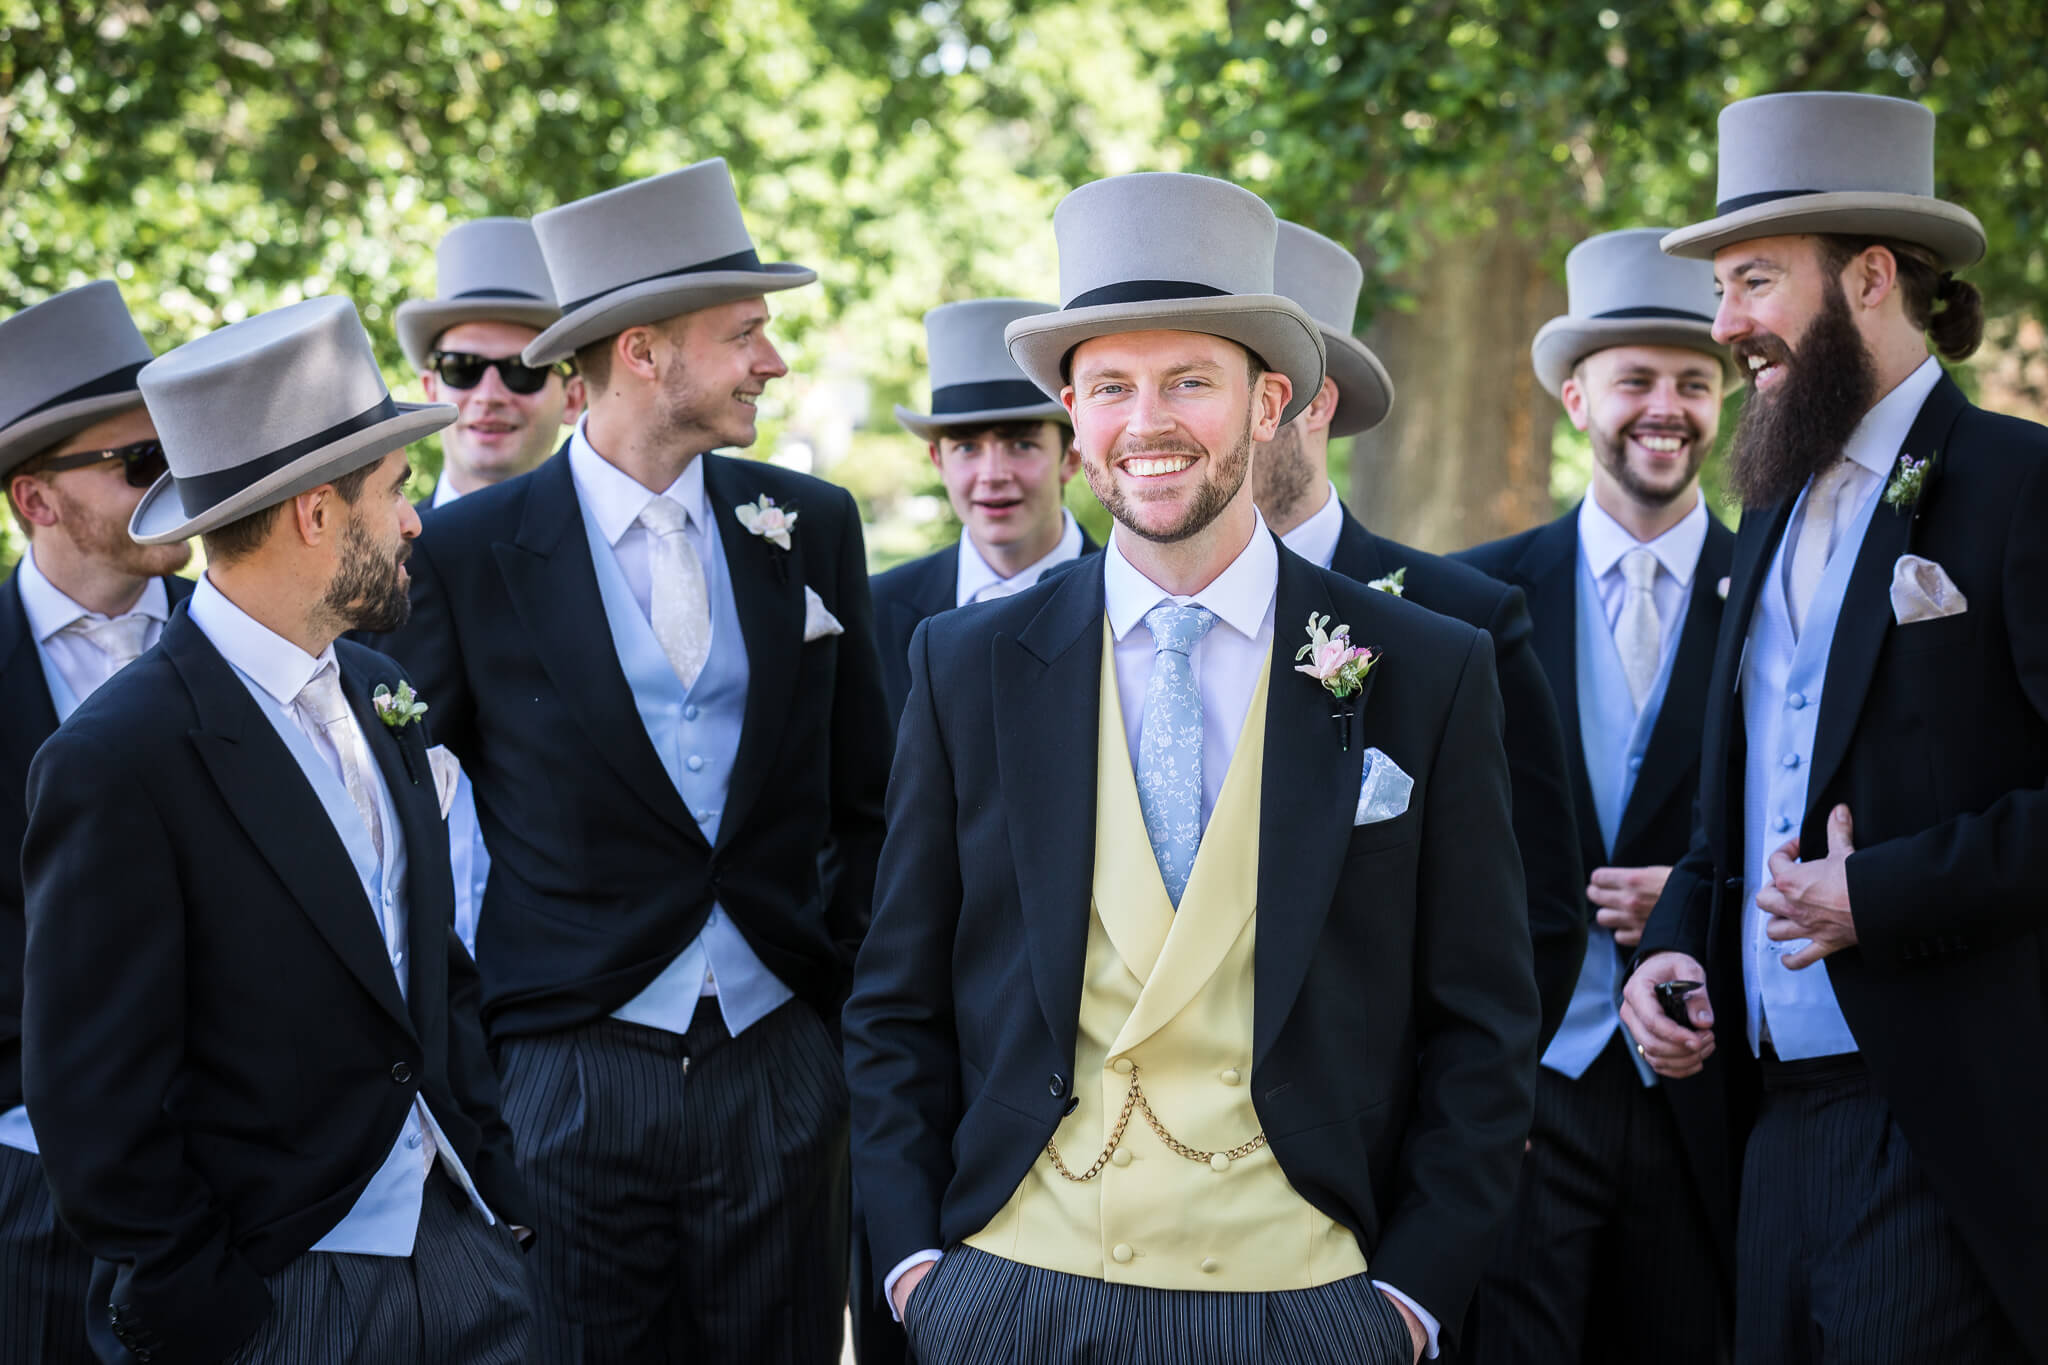 groom-suits